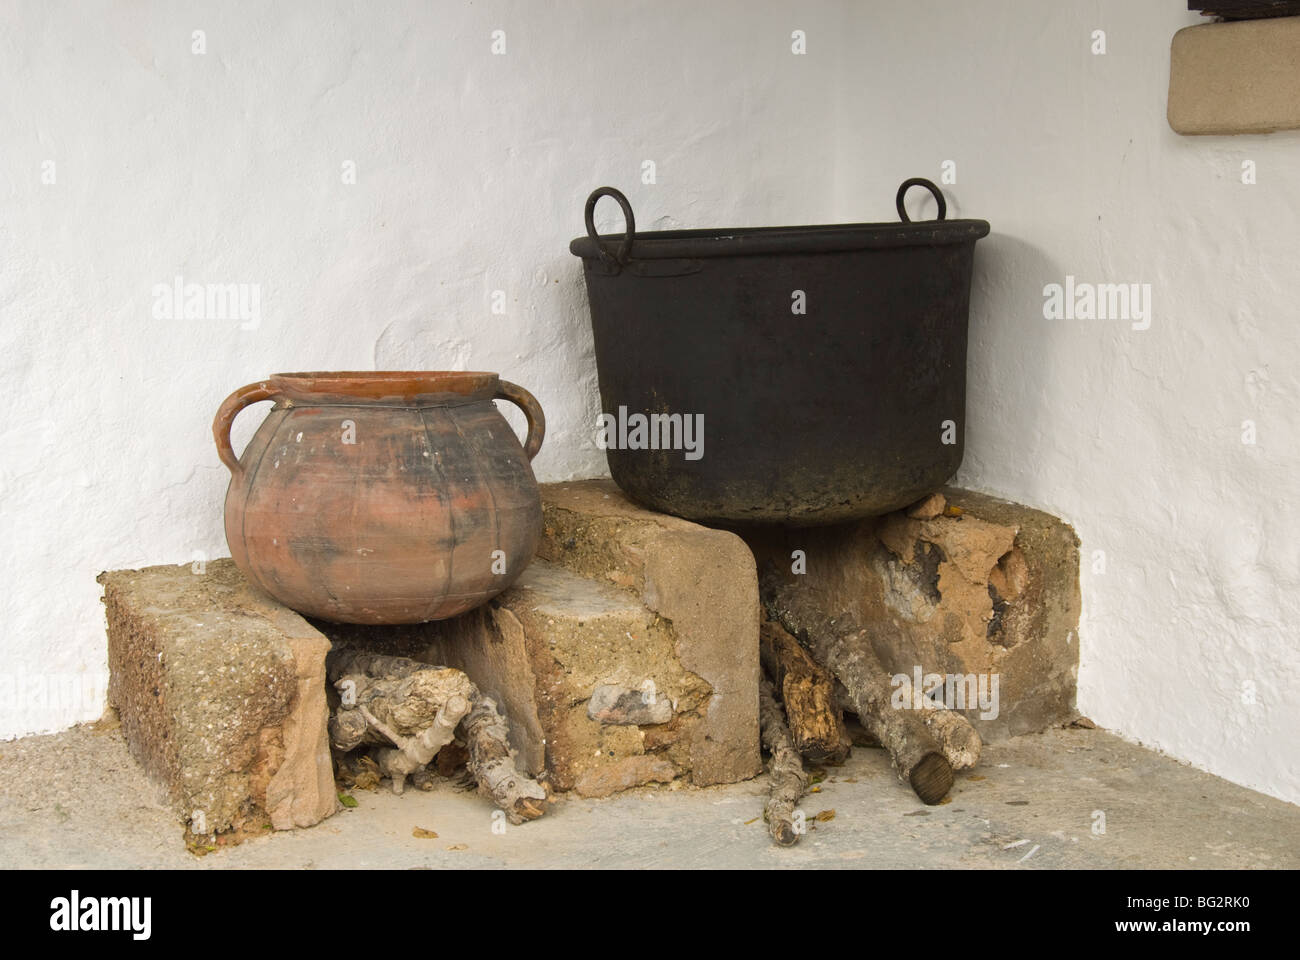 Typical Ibiza country house stove - Stock Image